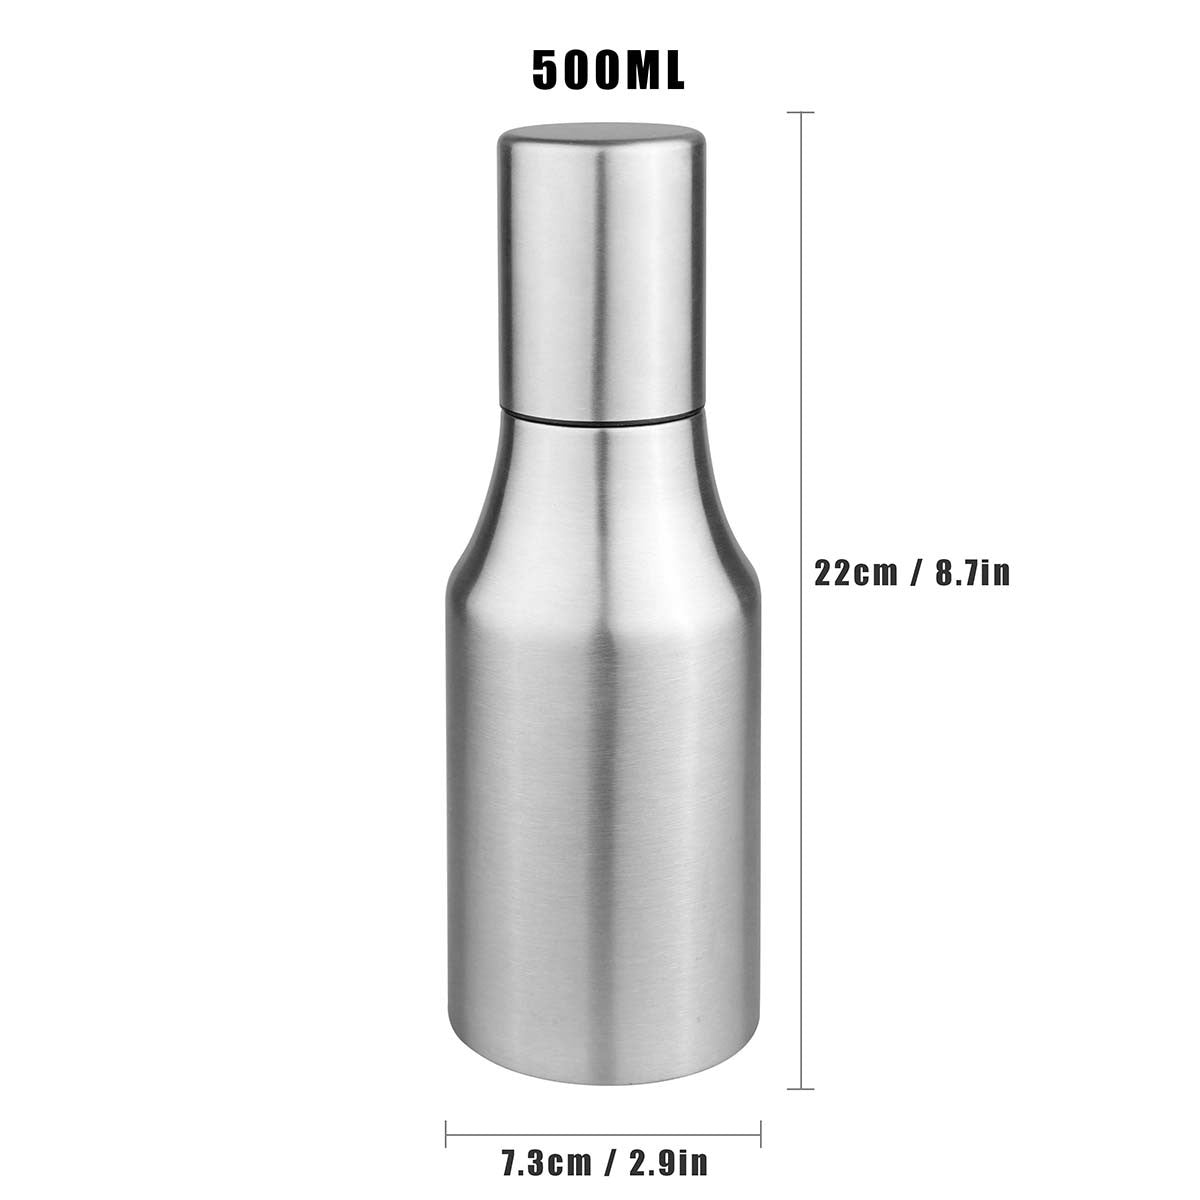 Stainless Steel Leak-proof Oil Dispenser